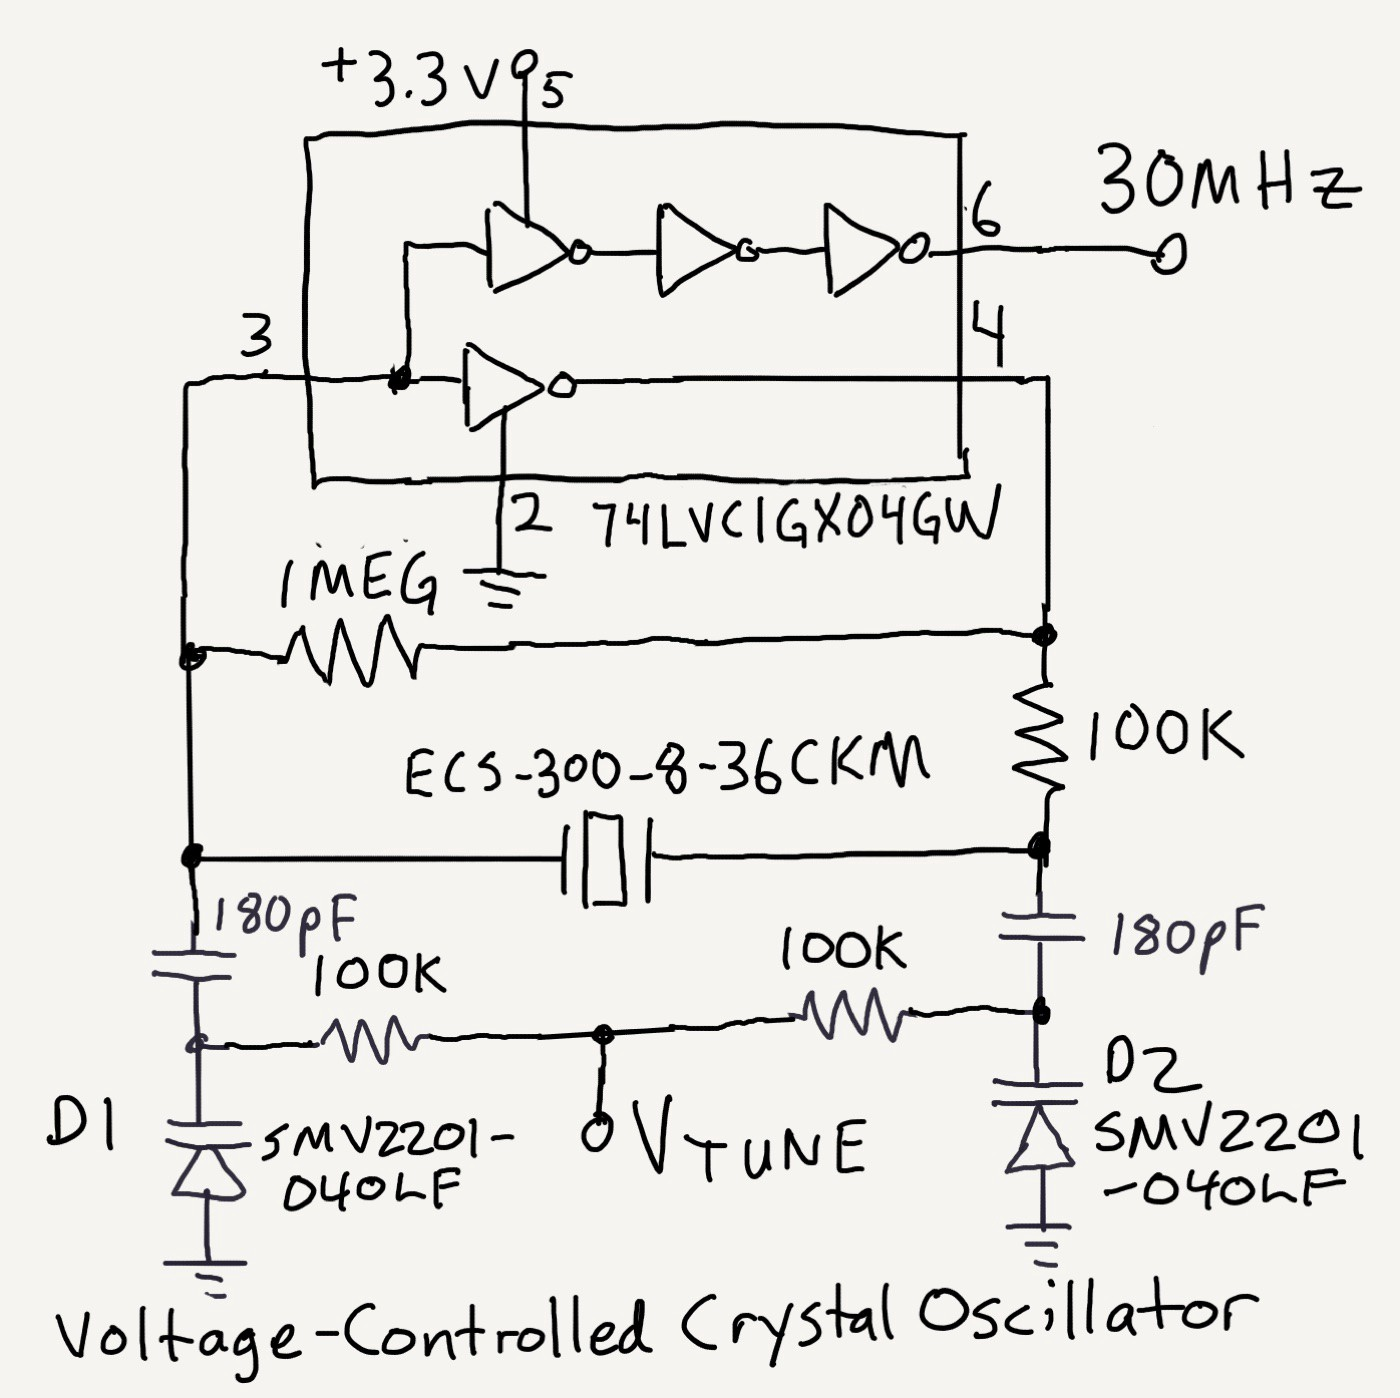 Hello Diodes Tempo Automation Medium Triac Light Dimming Regulator Circuit Electrical Engineering Stack A Diode That Is Reverse Biased Has Some Capacitance Varies With Voltage Are Designed To Do This In Predictable Way